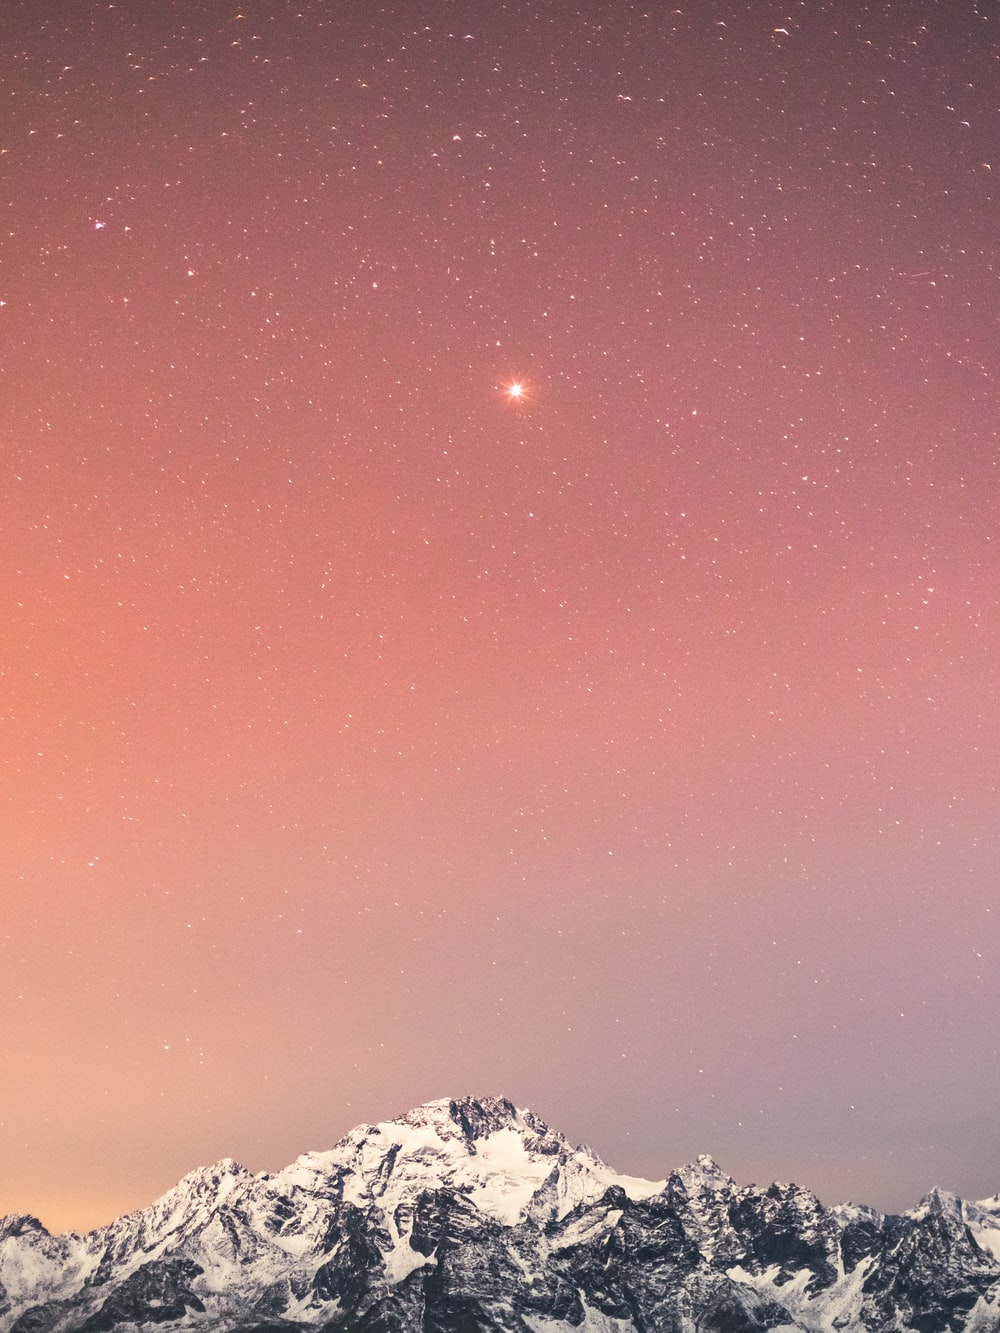 snow covered mountain under blue sky with stars during night time